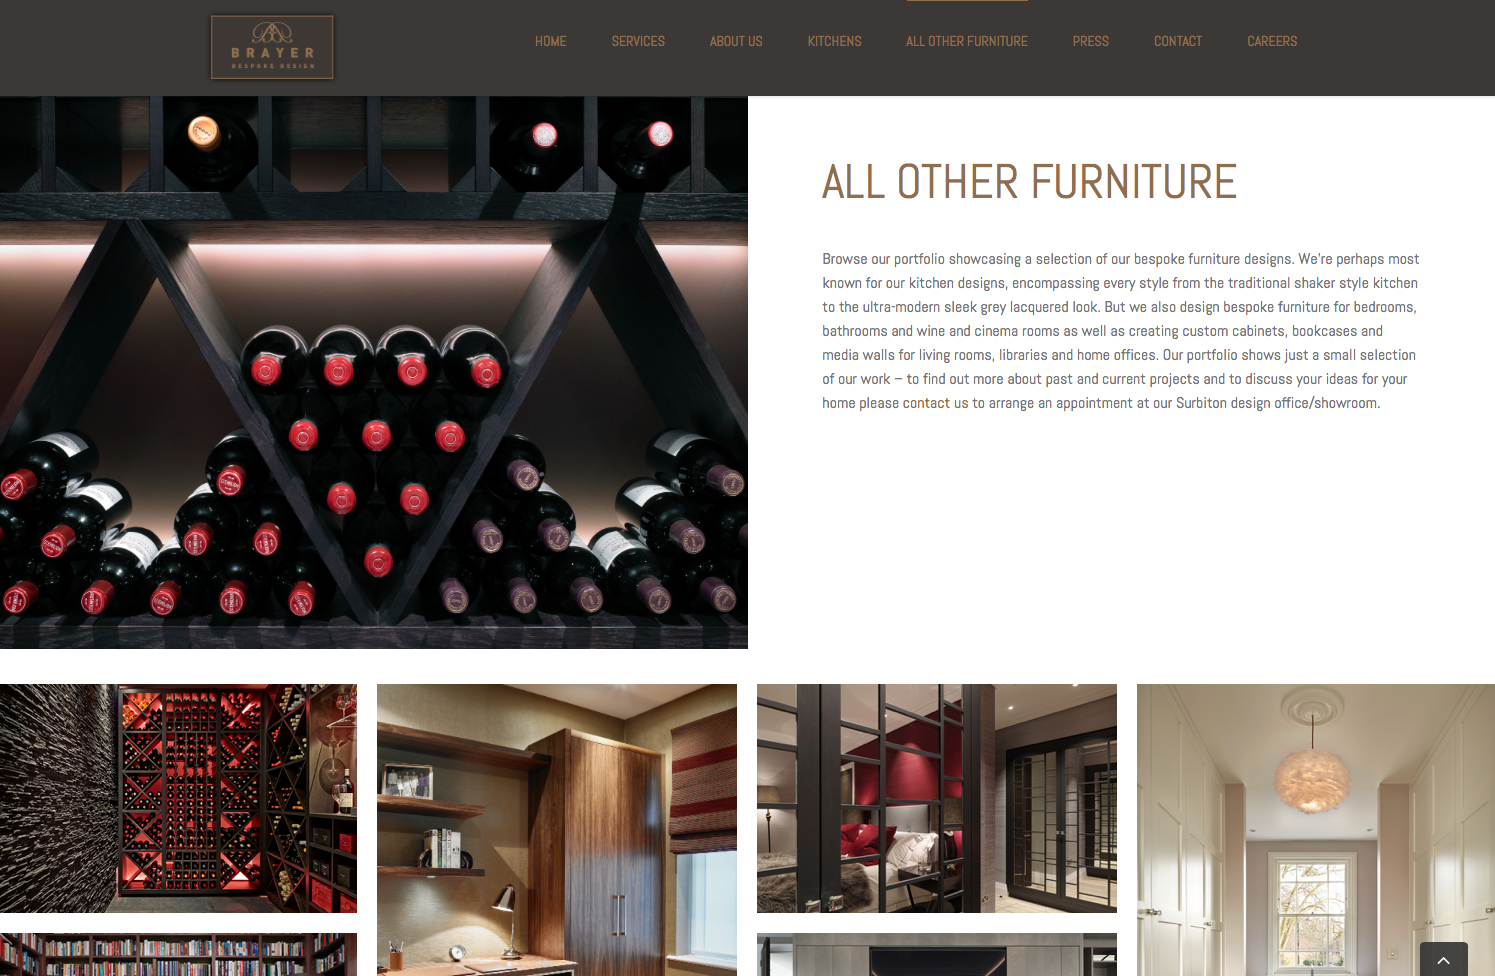 New page for Brayer website redesign - All Other Furniture